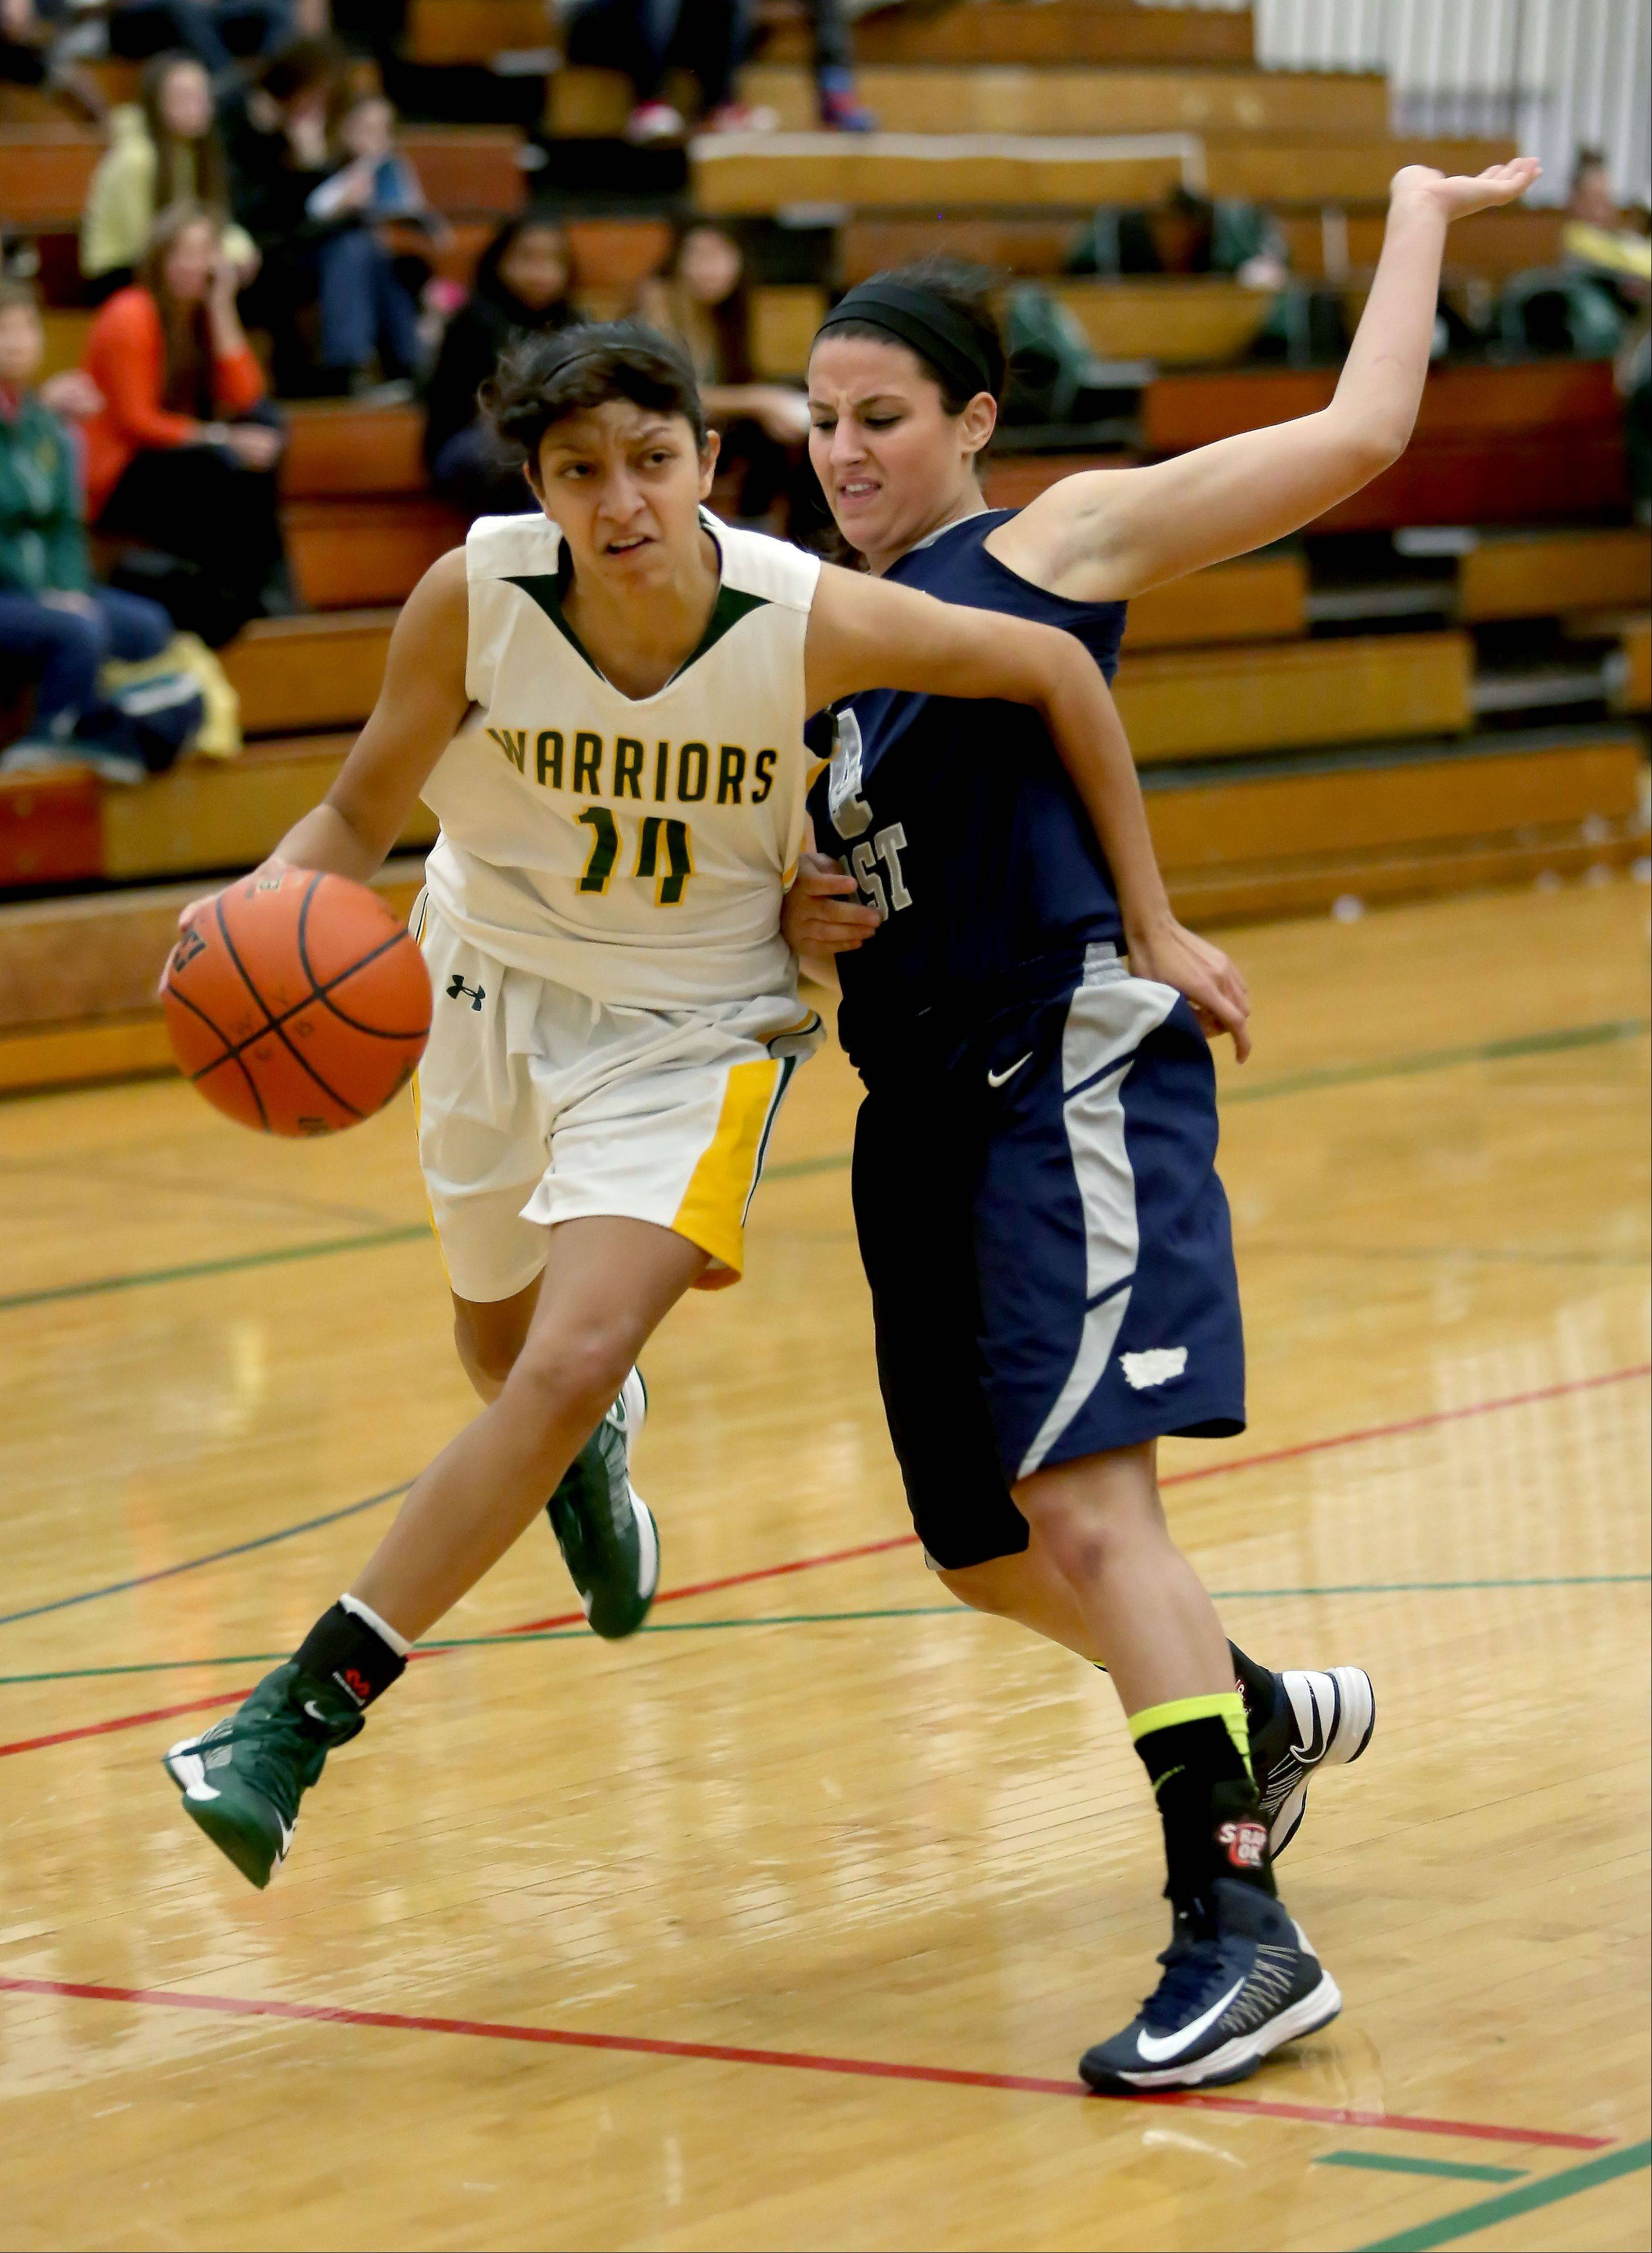 Waubonsie Valley's Andrea Colin drives around Julianna Wadsworth of Oswego East during girls basketball in Aurora on Monday.